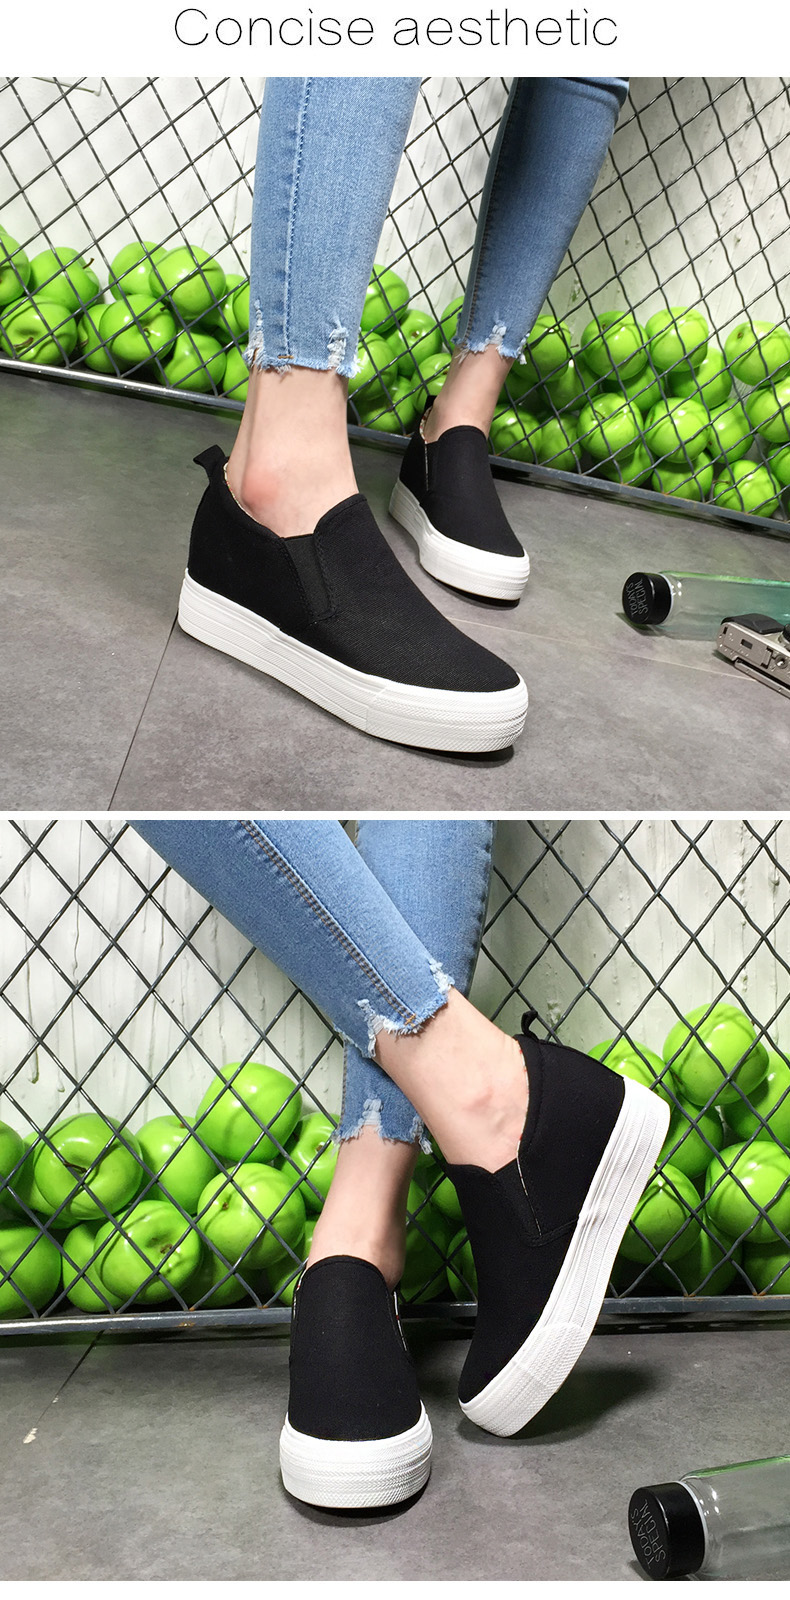 New 2019 Thick Sole Muffin Shoes Women Flat Platform Fashion Women s ... 52c96ca74689